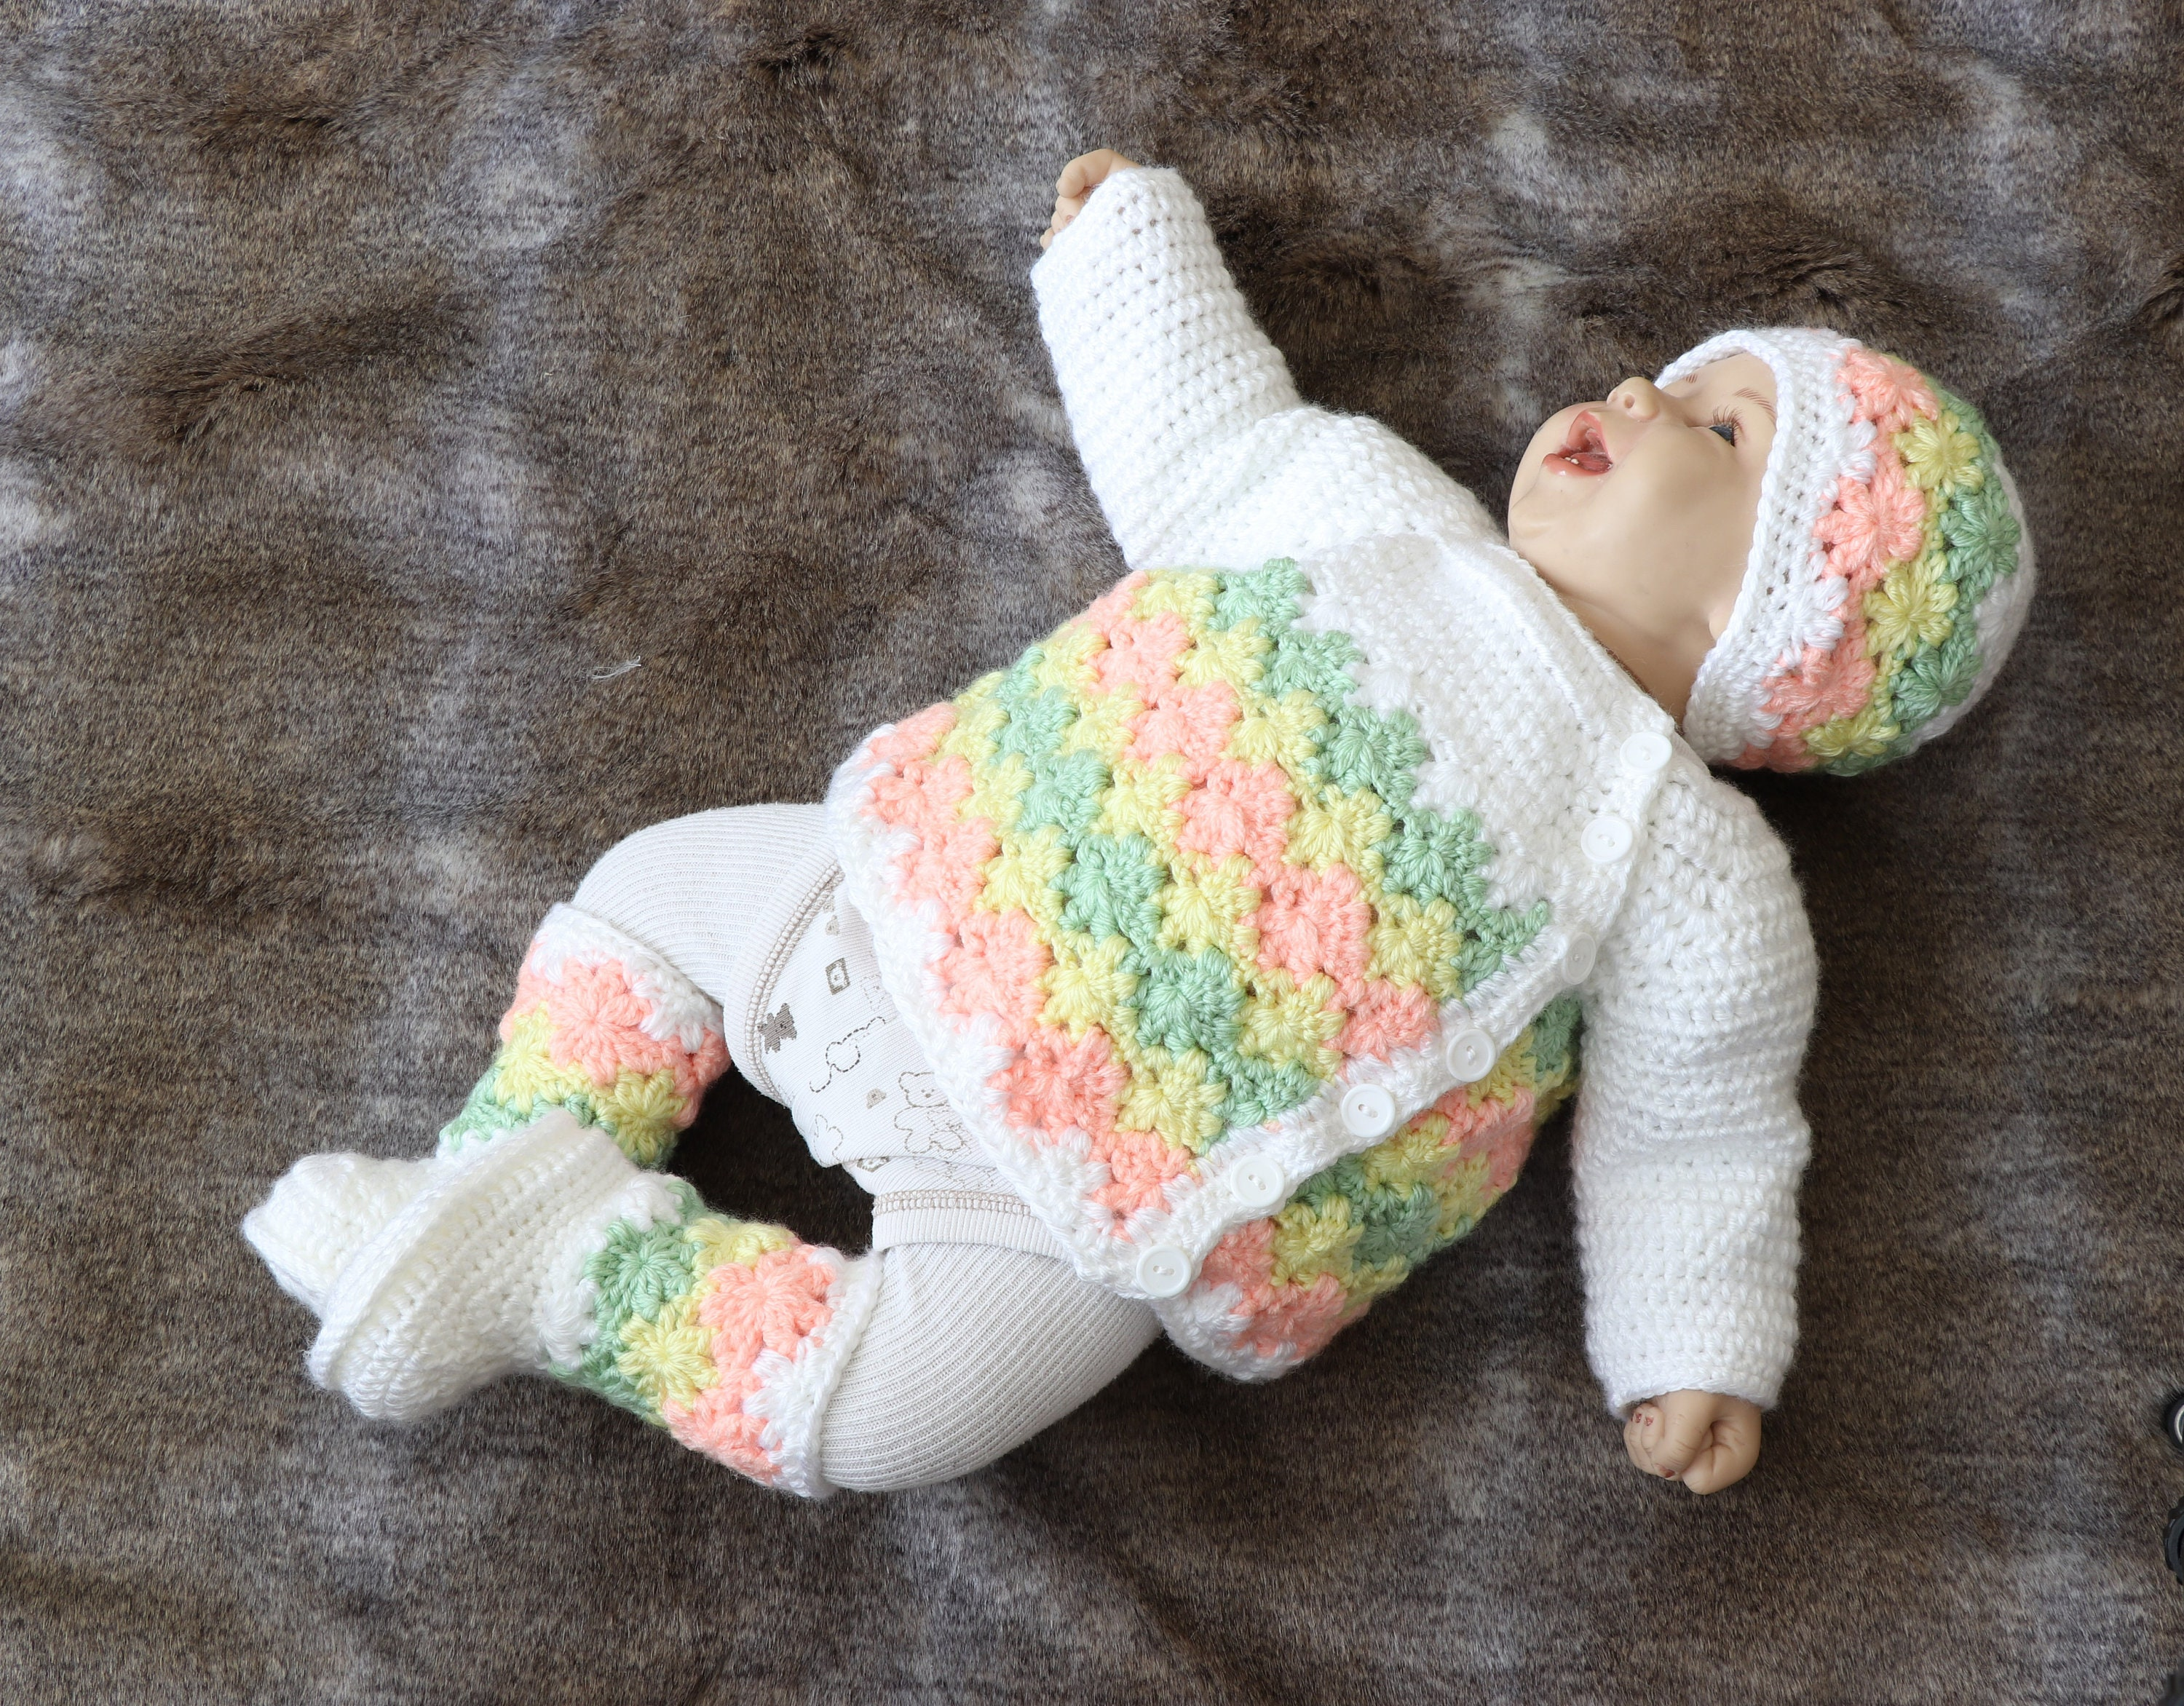 Crochet Baby Outfit Baby Home Coming Outfit Gender Neutral Baby